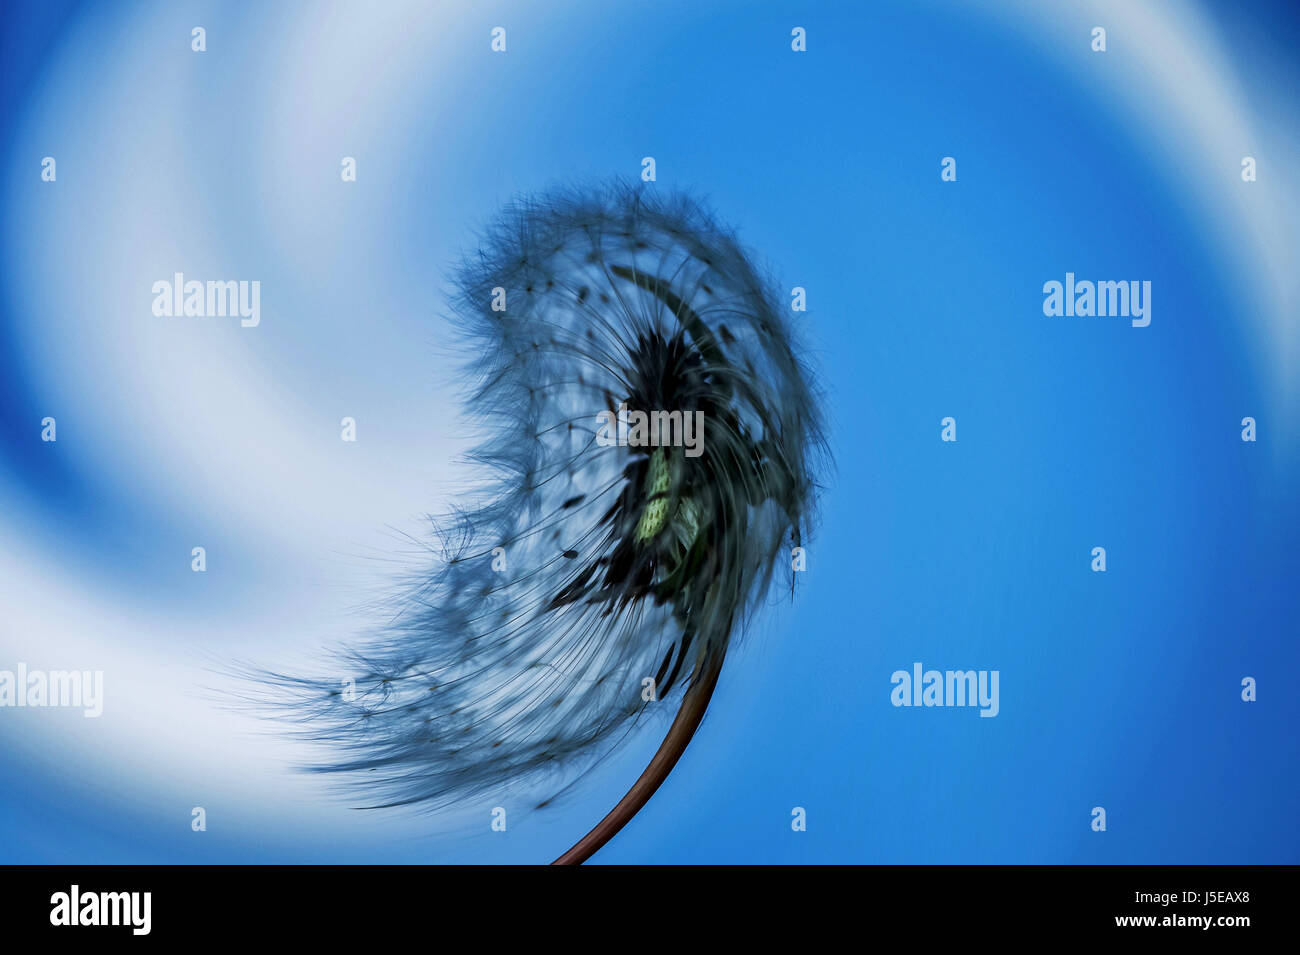 Fine art macro photography: Photoshop processing of a dandelion seed head against blue sky with one cloud - Stock Image